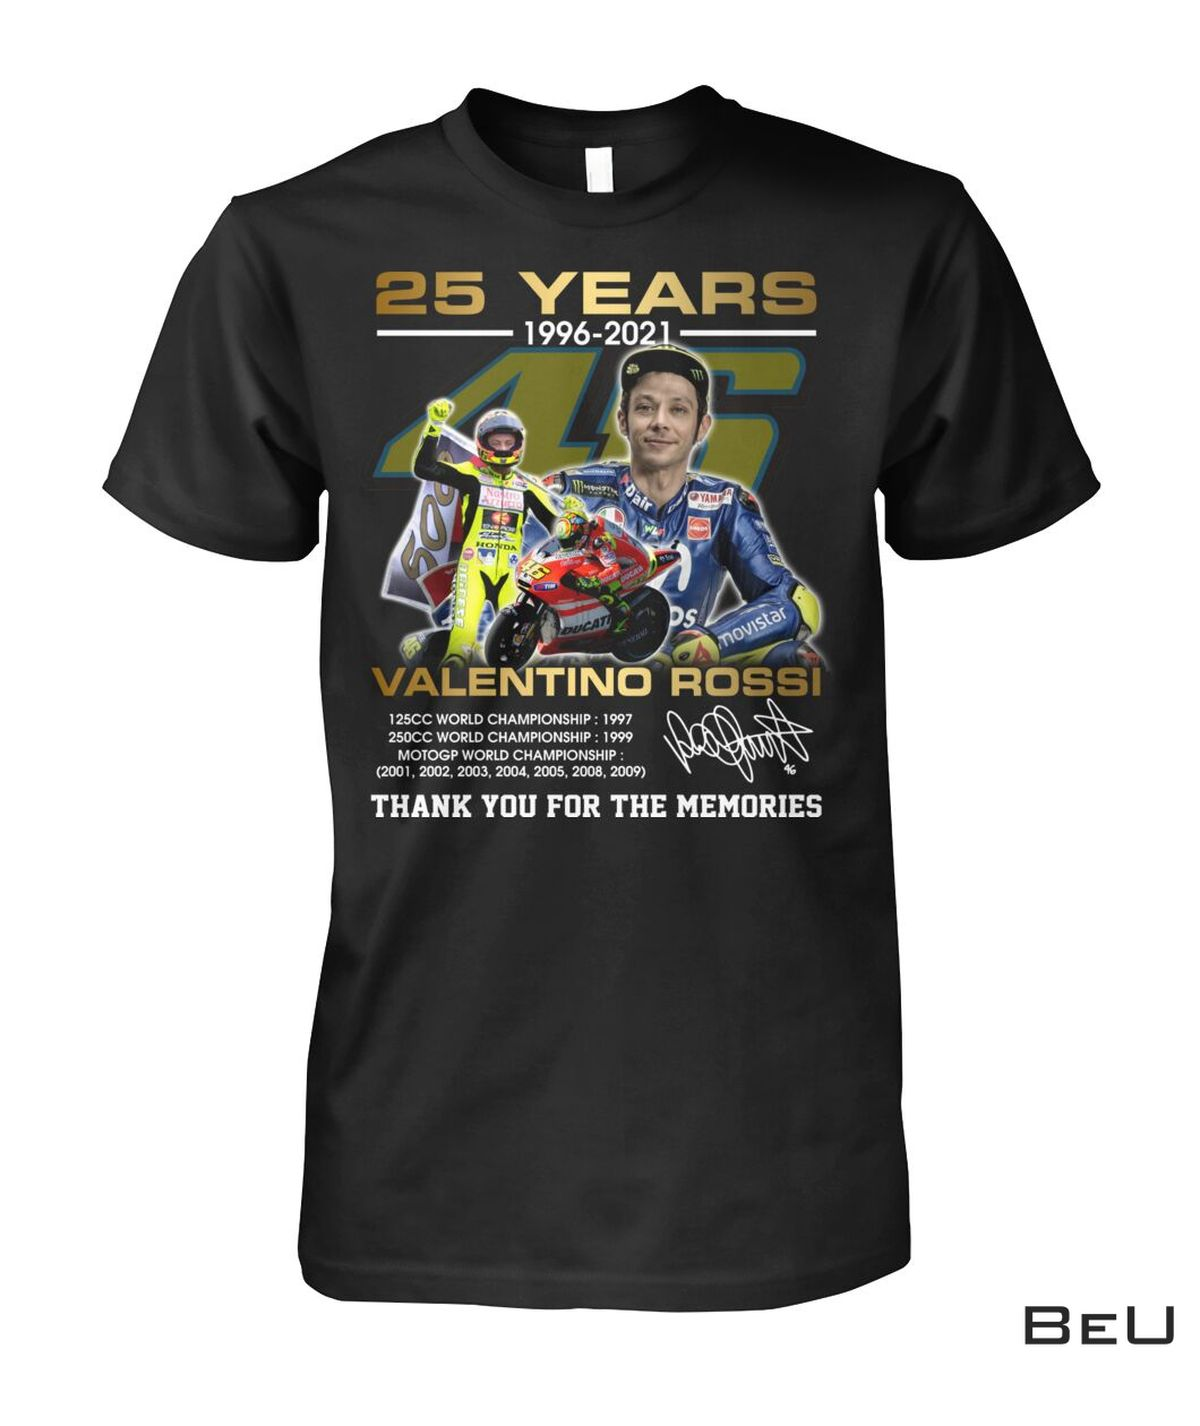 25 Years 1996-2021 Valentino Rossi Thank You For The Memories Shirt, hoodie, tank top